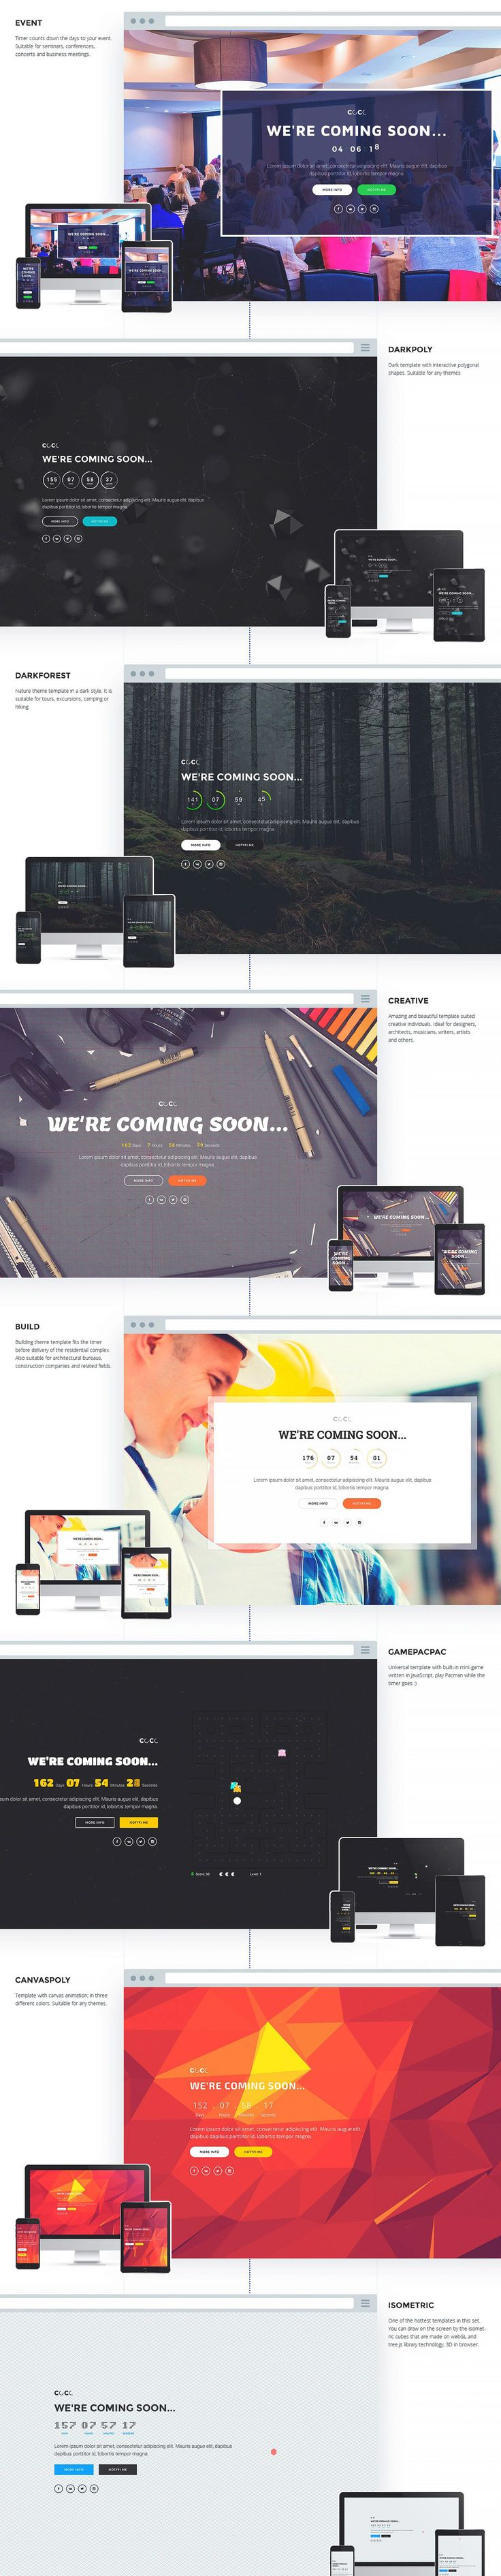 coco is a multi purpose launching soon html template with over 250 layout